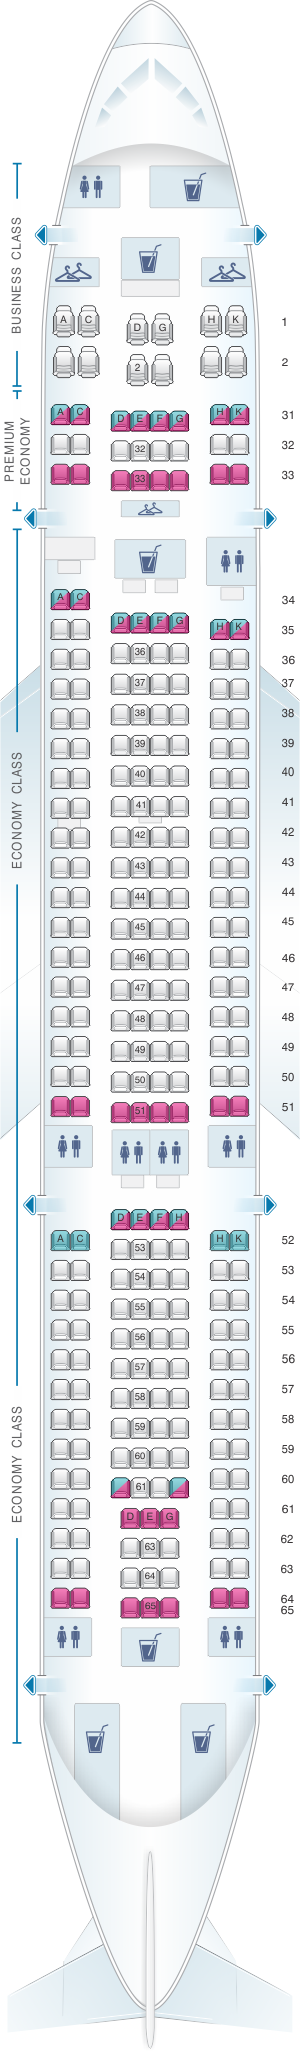 Seat map for China Southern Airlines Airbus A33G